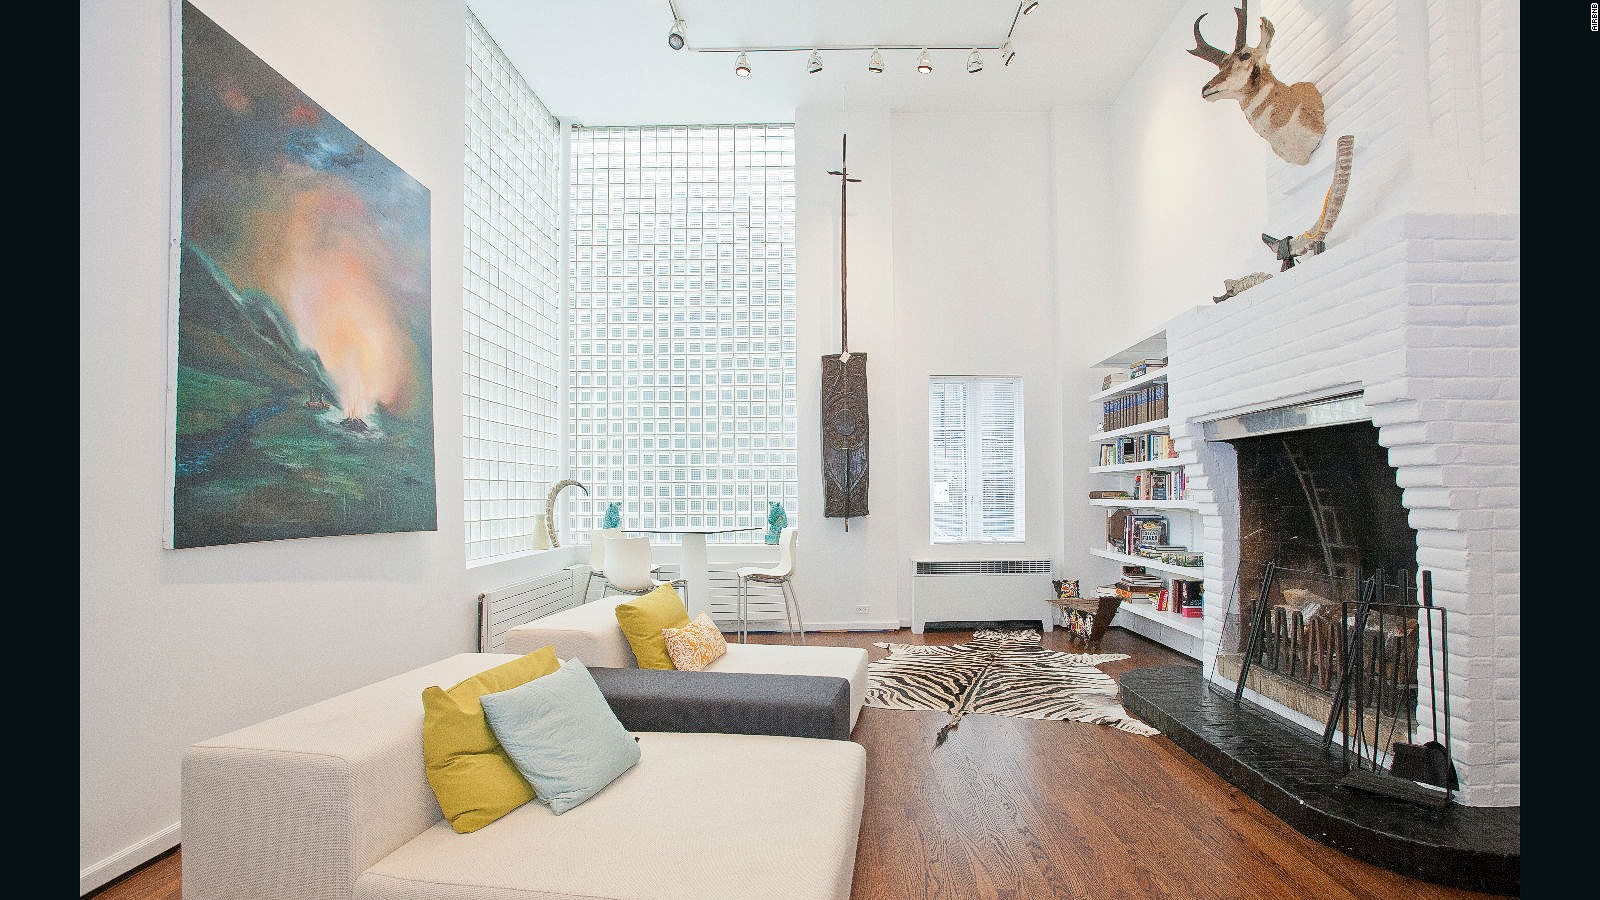 Best Airbnb homes for architecture   CNN Travel